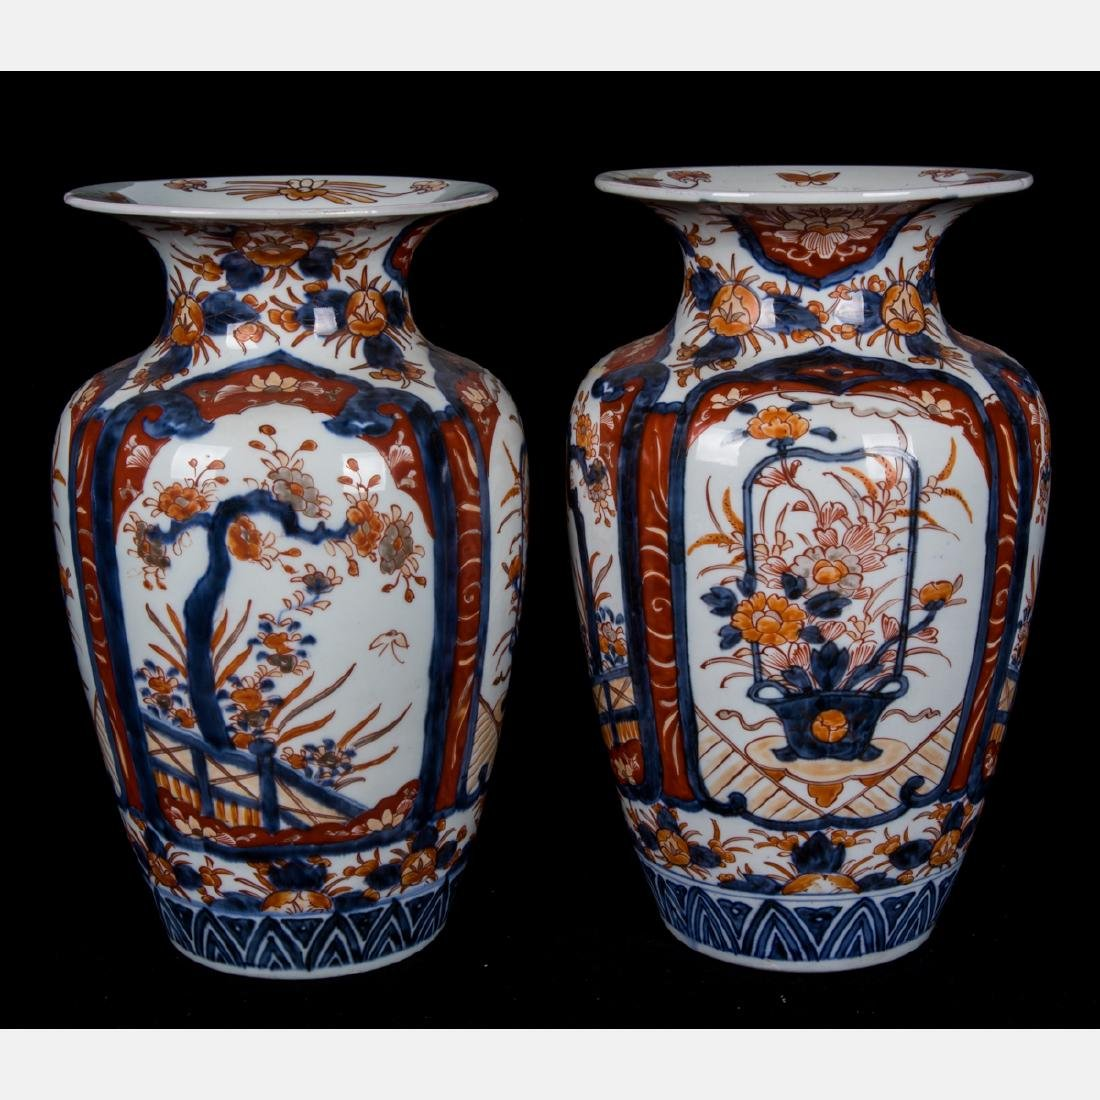 A Pair of Japanese Imari Porcelain Vases, 20th Century.